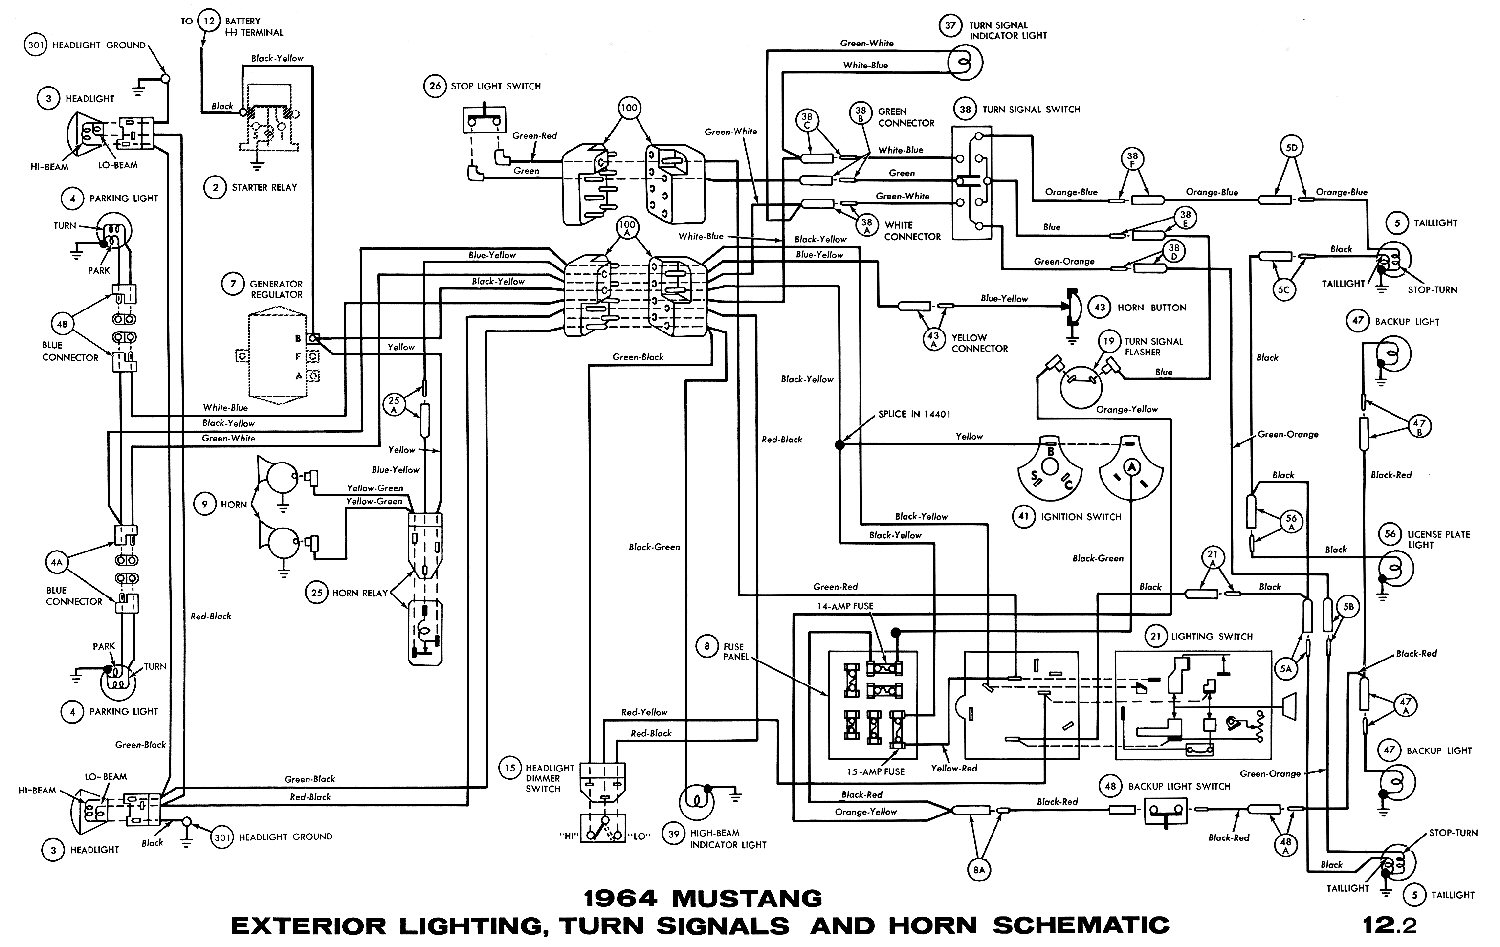 wiring diagram for emergency lighting with 1964 Mustang Wiring Diagrams on Drive 2 also 19913 150 Solenoid 1500 P Pump in addition 3tpdi Chevrolet S10 Blazer 1995 S10 Blazer Brake Lights Turn additionally Bodine Emergency Wiring Diagram besides Wiring Diagram Cad.